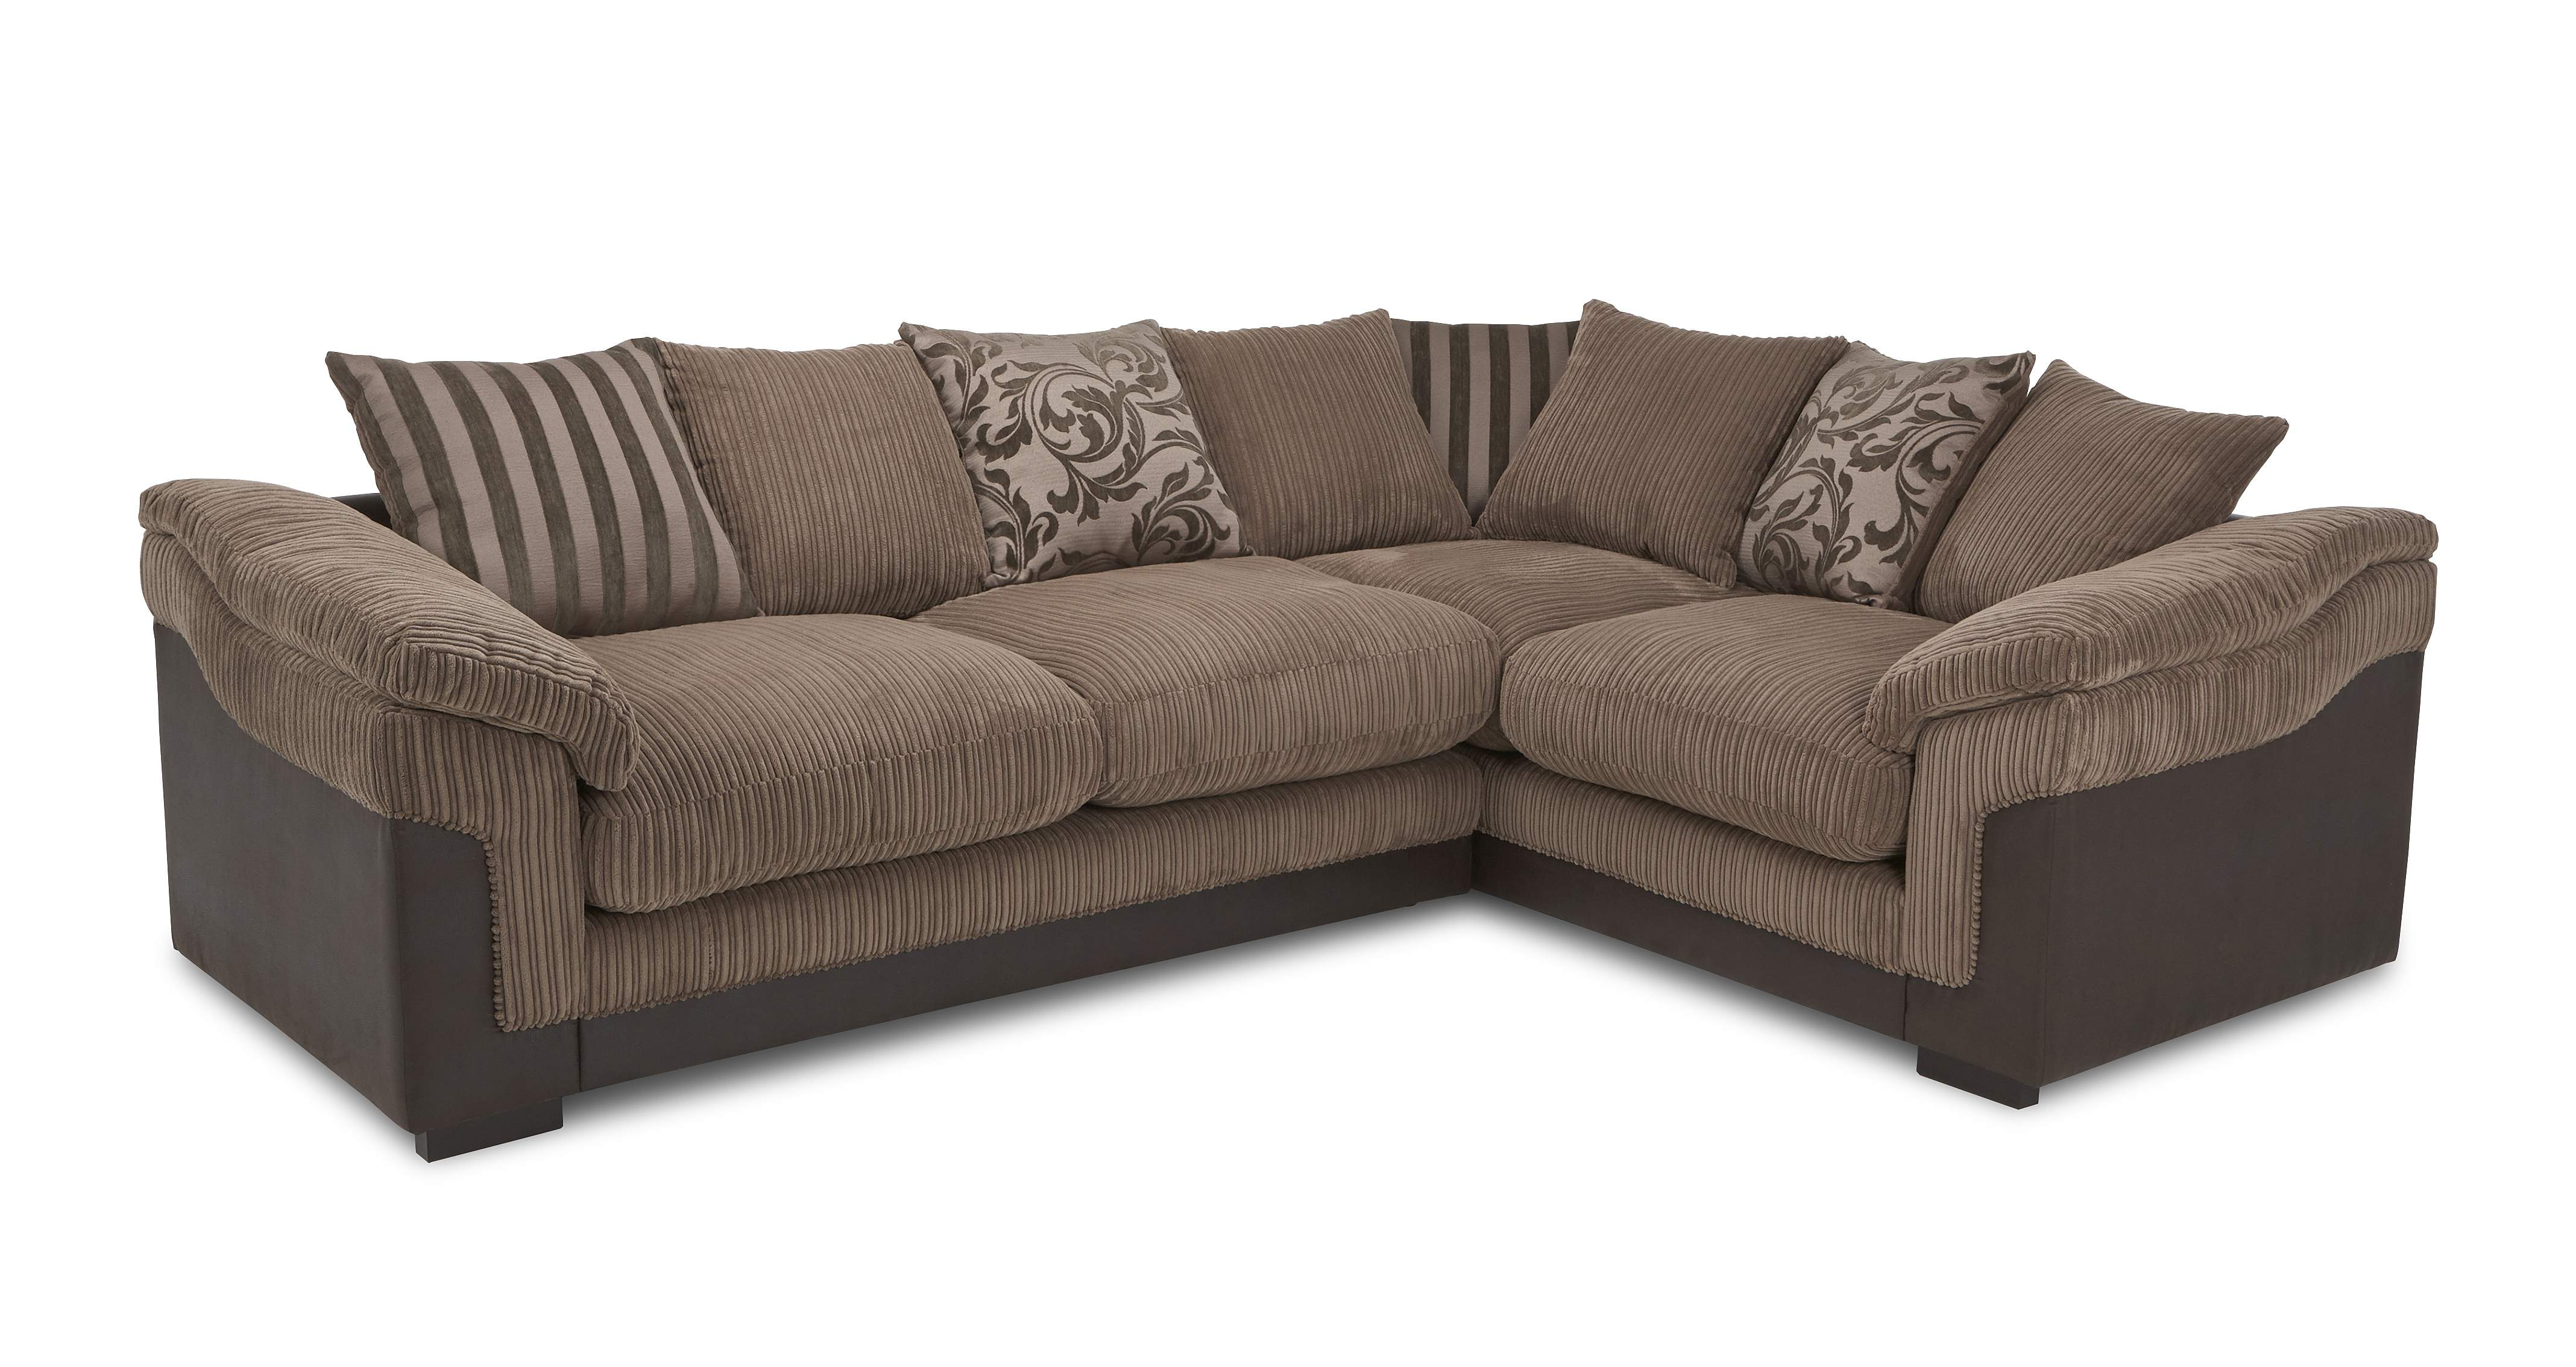 Latest Bed Designs Dfs Hallow Brown Fabric Corner Sofa With Foam Base